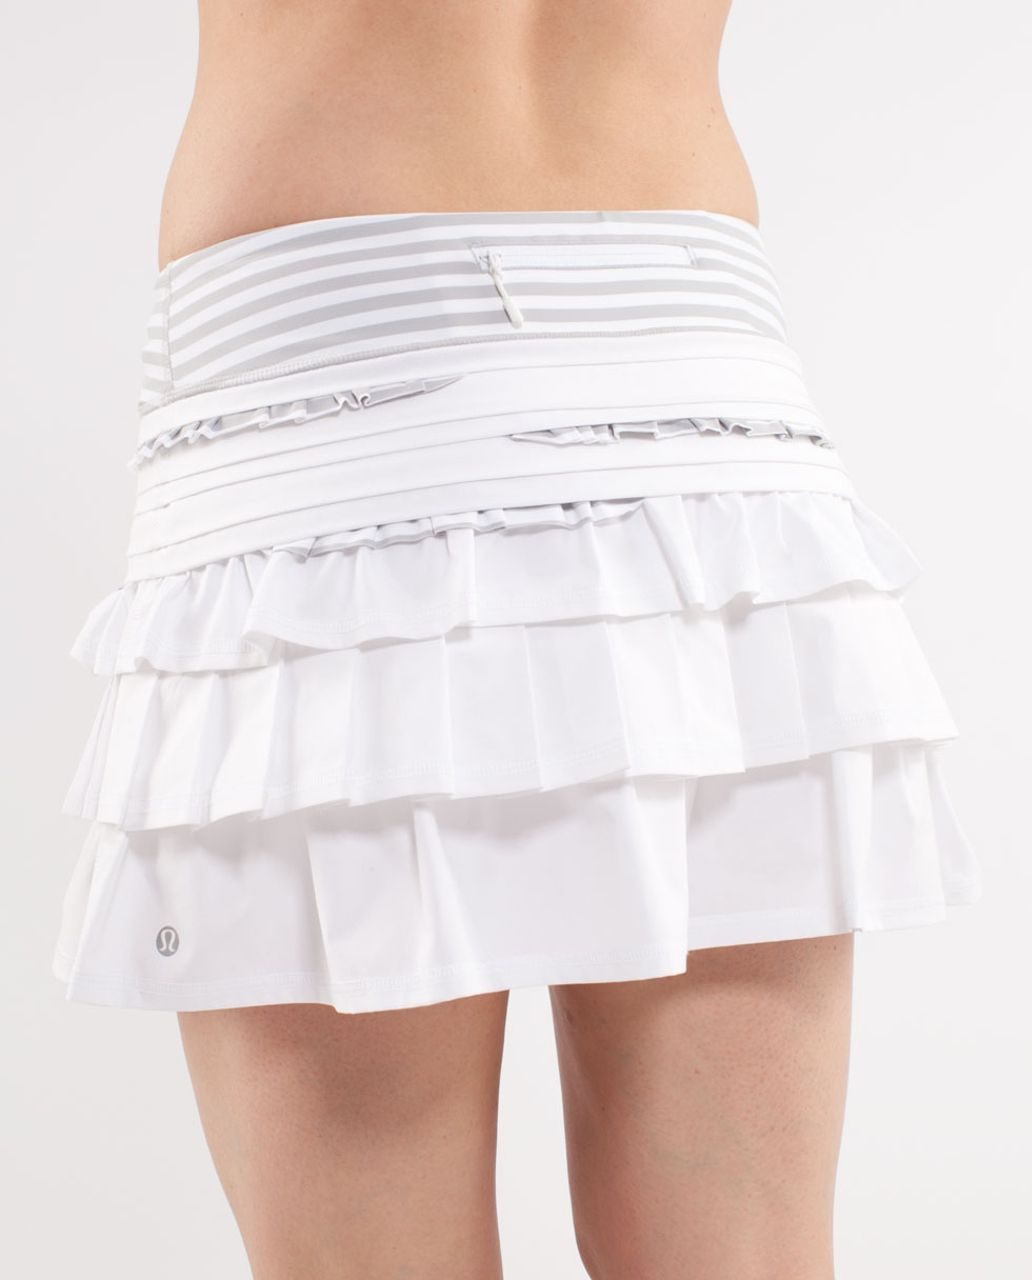 Lululemon Run:  Back On Track Skirt - White /  Silver Spoon White Narrow Bold Multi Stripe